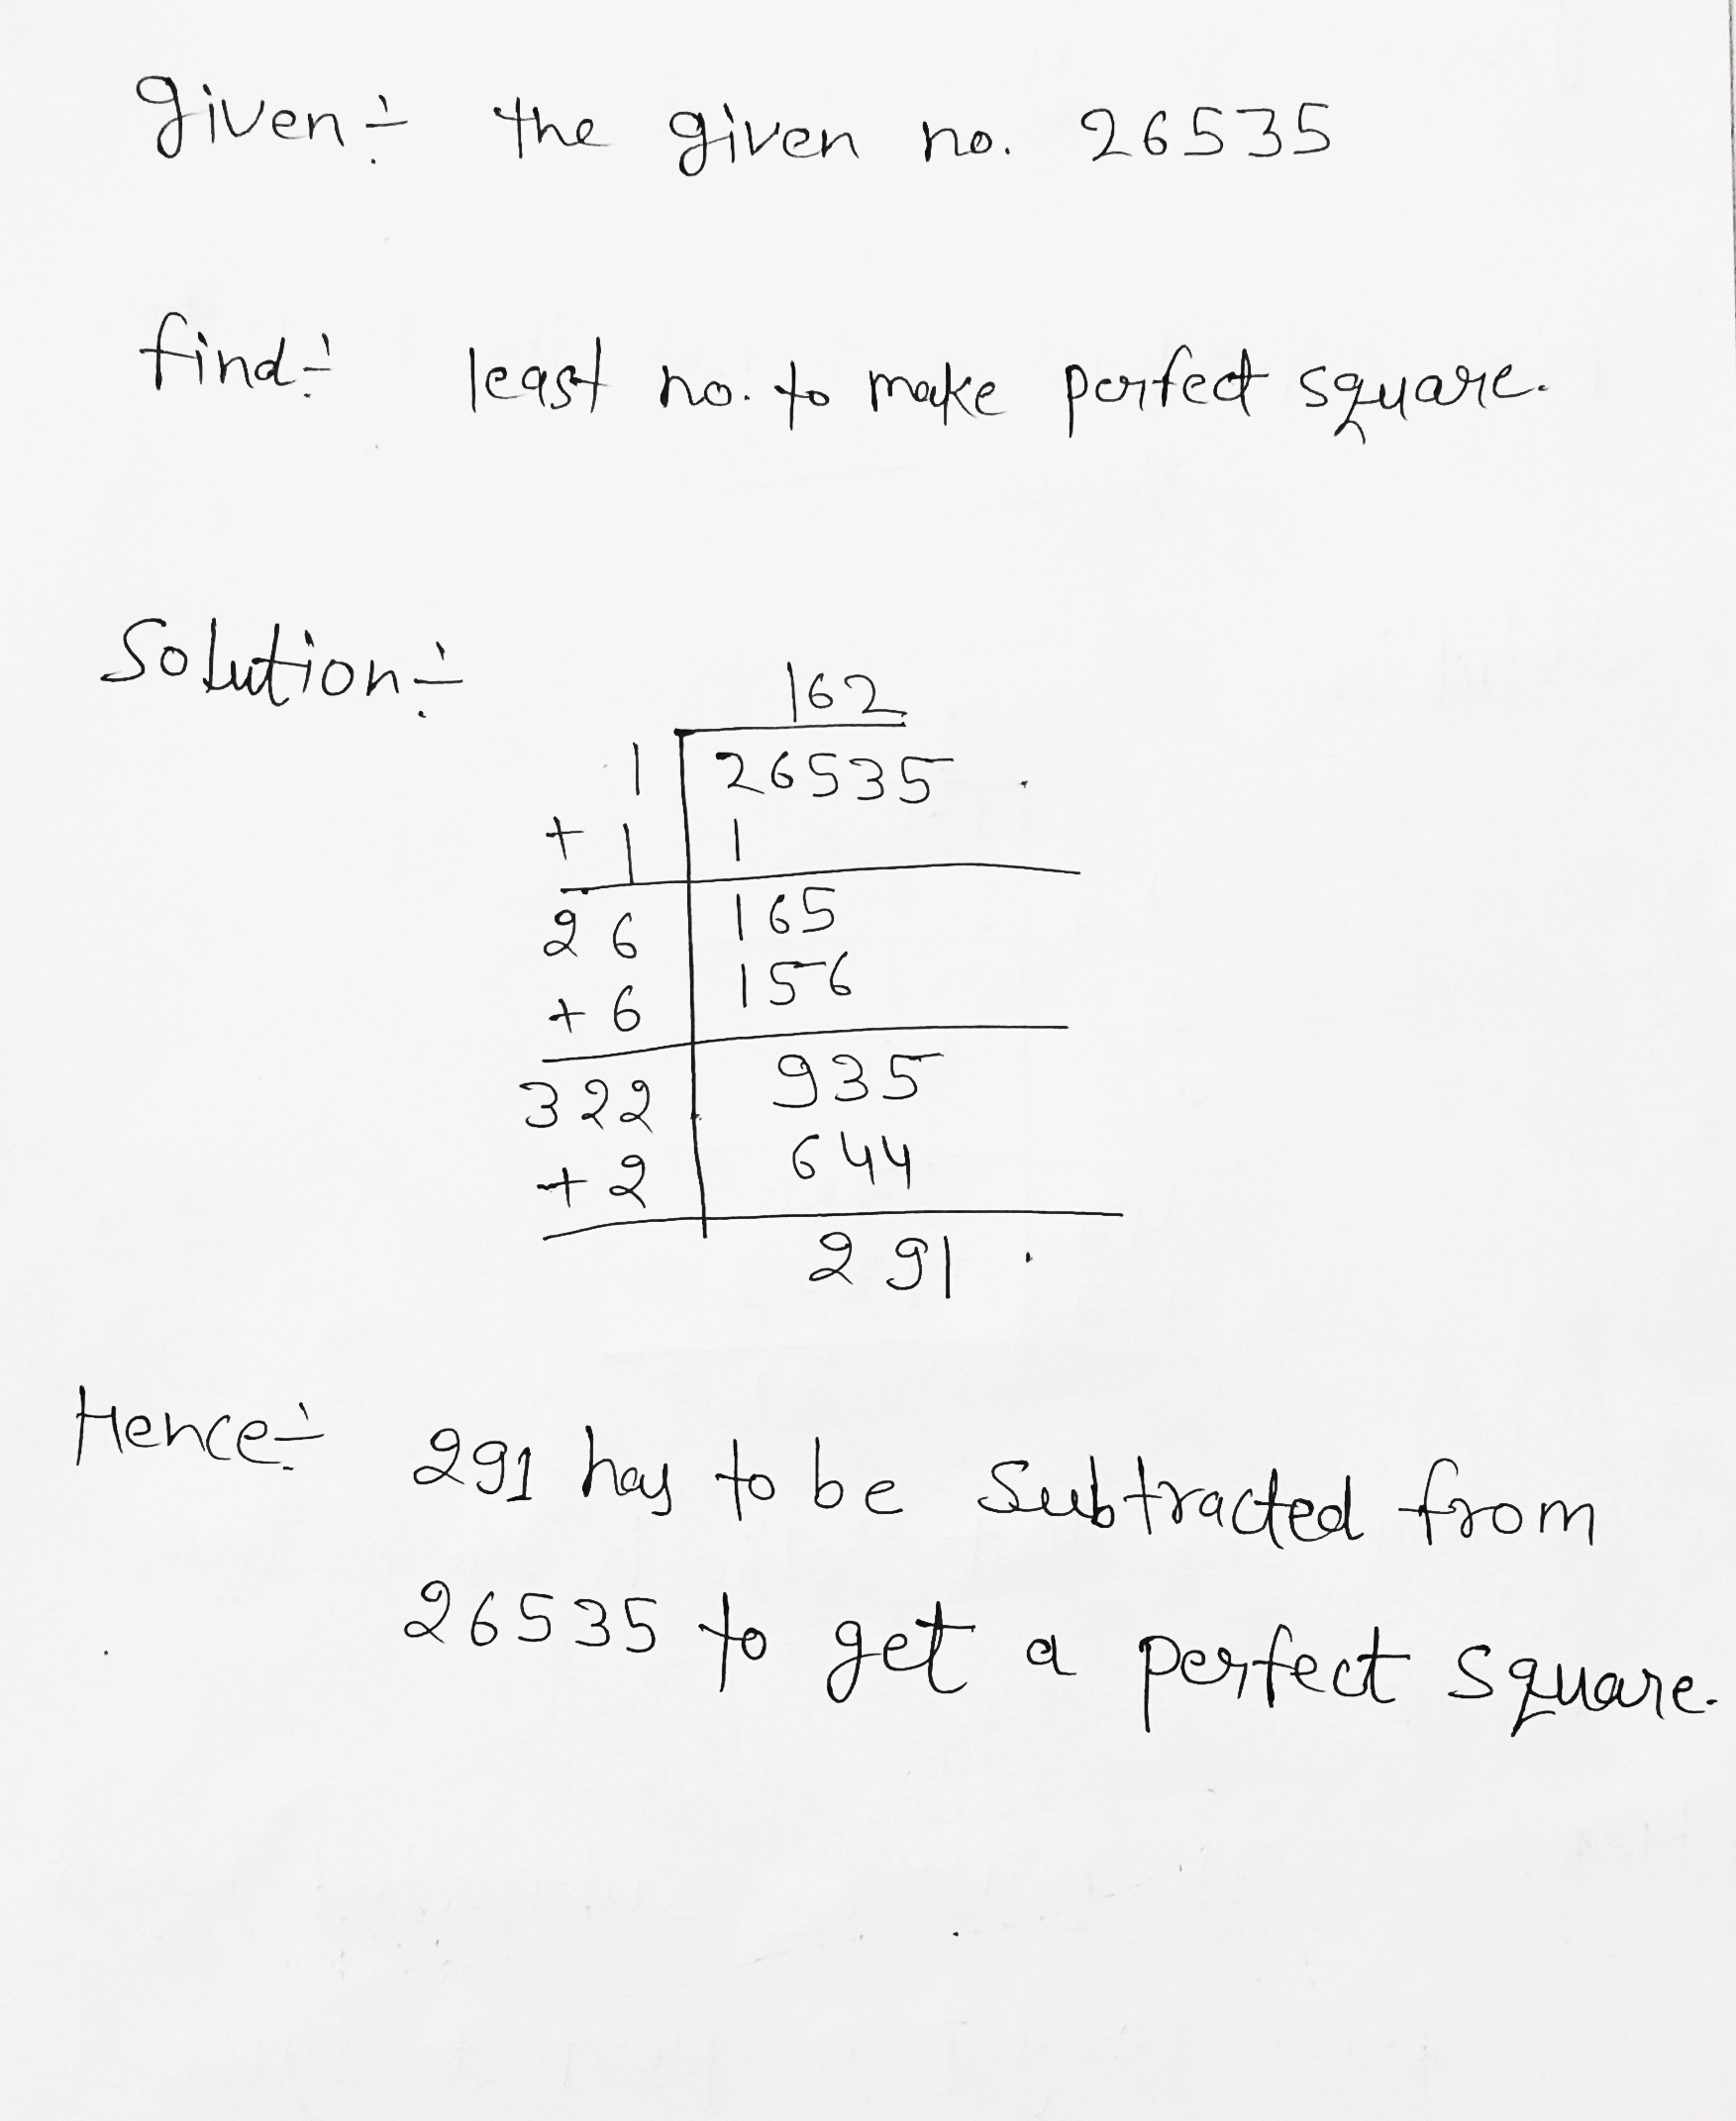 Find The Square Root Of 225 Using Repeated Subtraction Edurev is like a wikipedia just for education and the finding square root by repeated subtraction class do check out the sample questions of finding square root by repeated subtraction class 8 245 gy +592 ht +509 hm + va +379 hn +504 hk +852 hu +36 is +354 in +91 id +62 ci +225. toppr